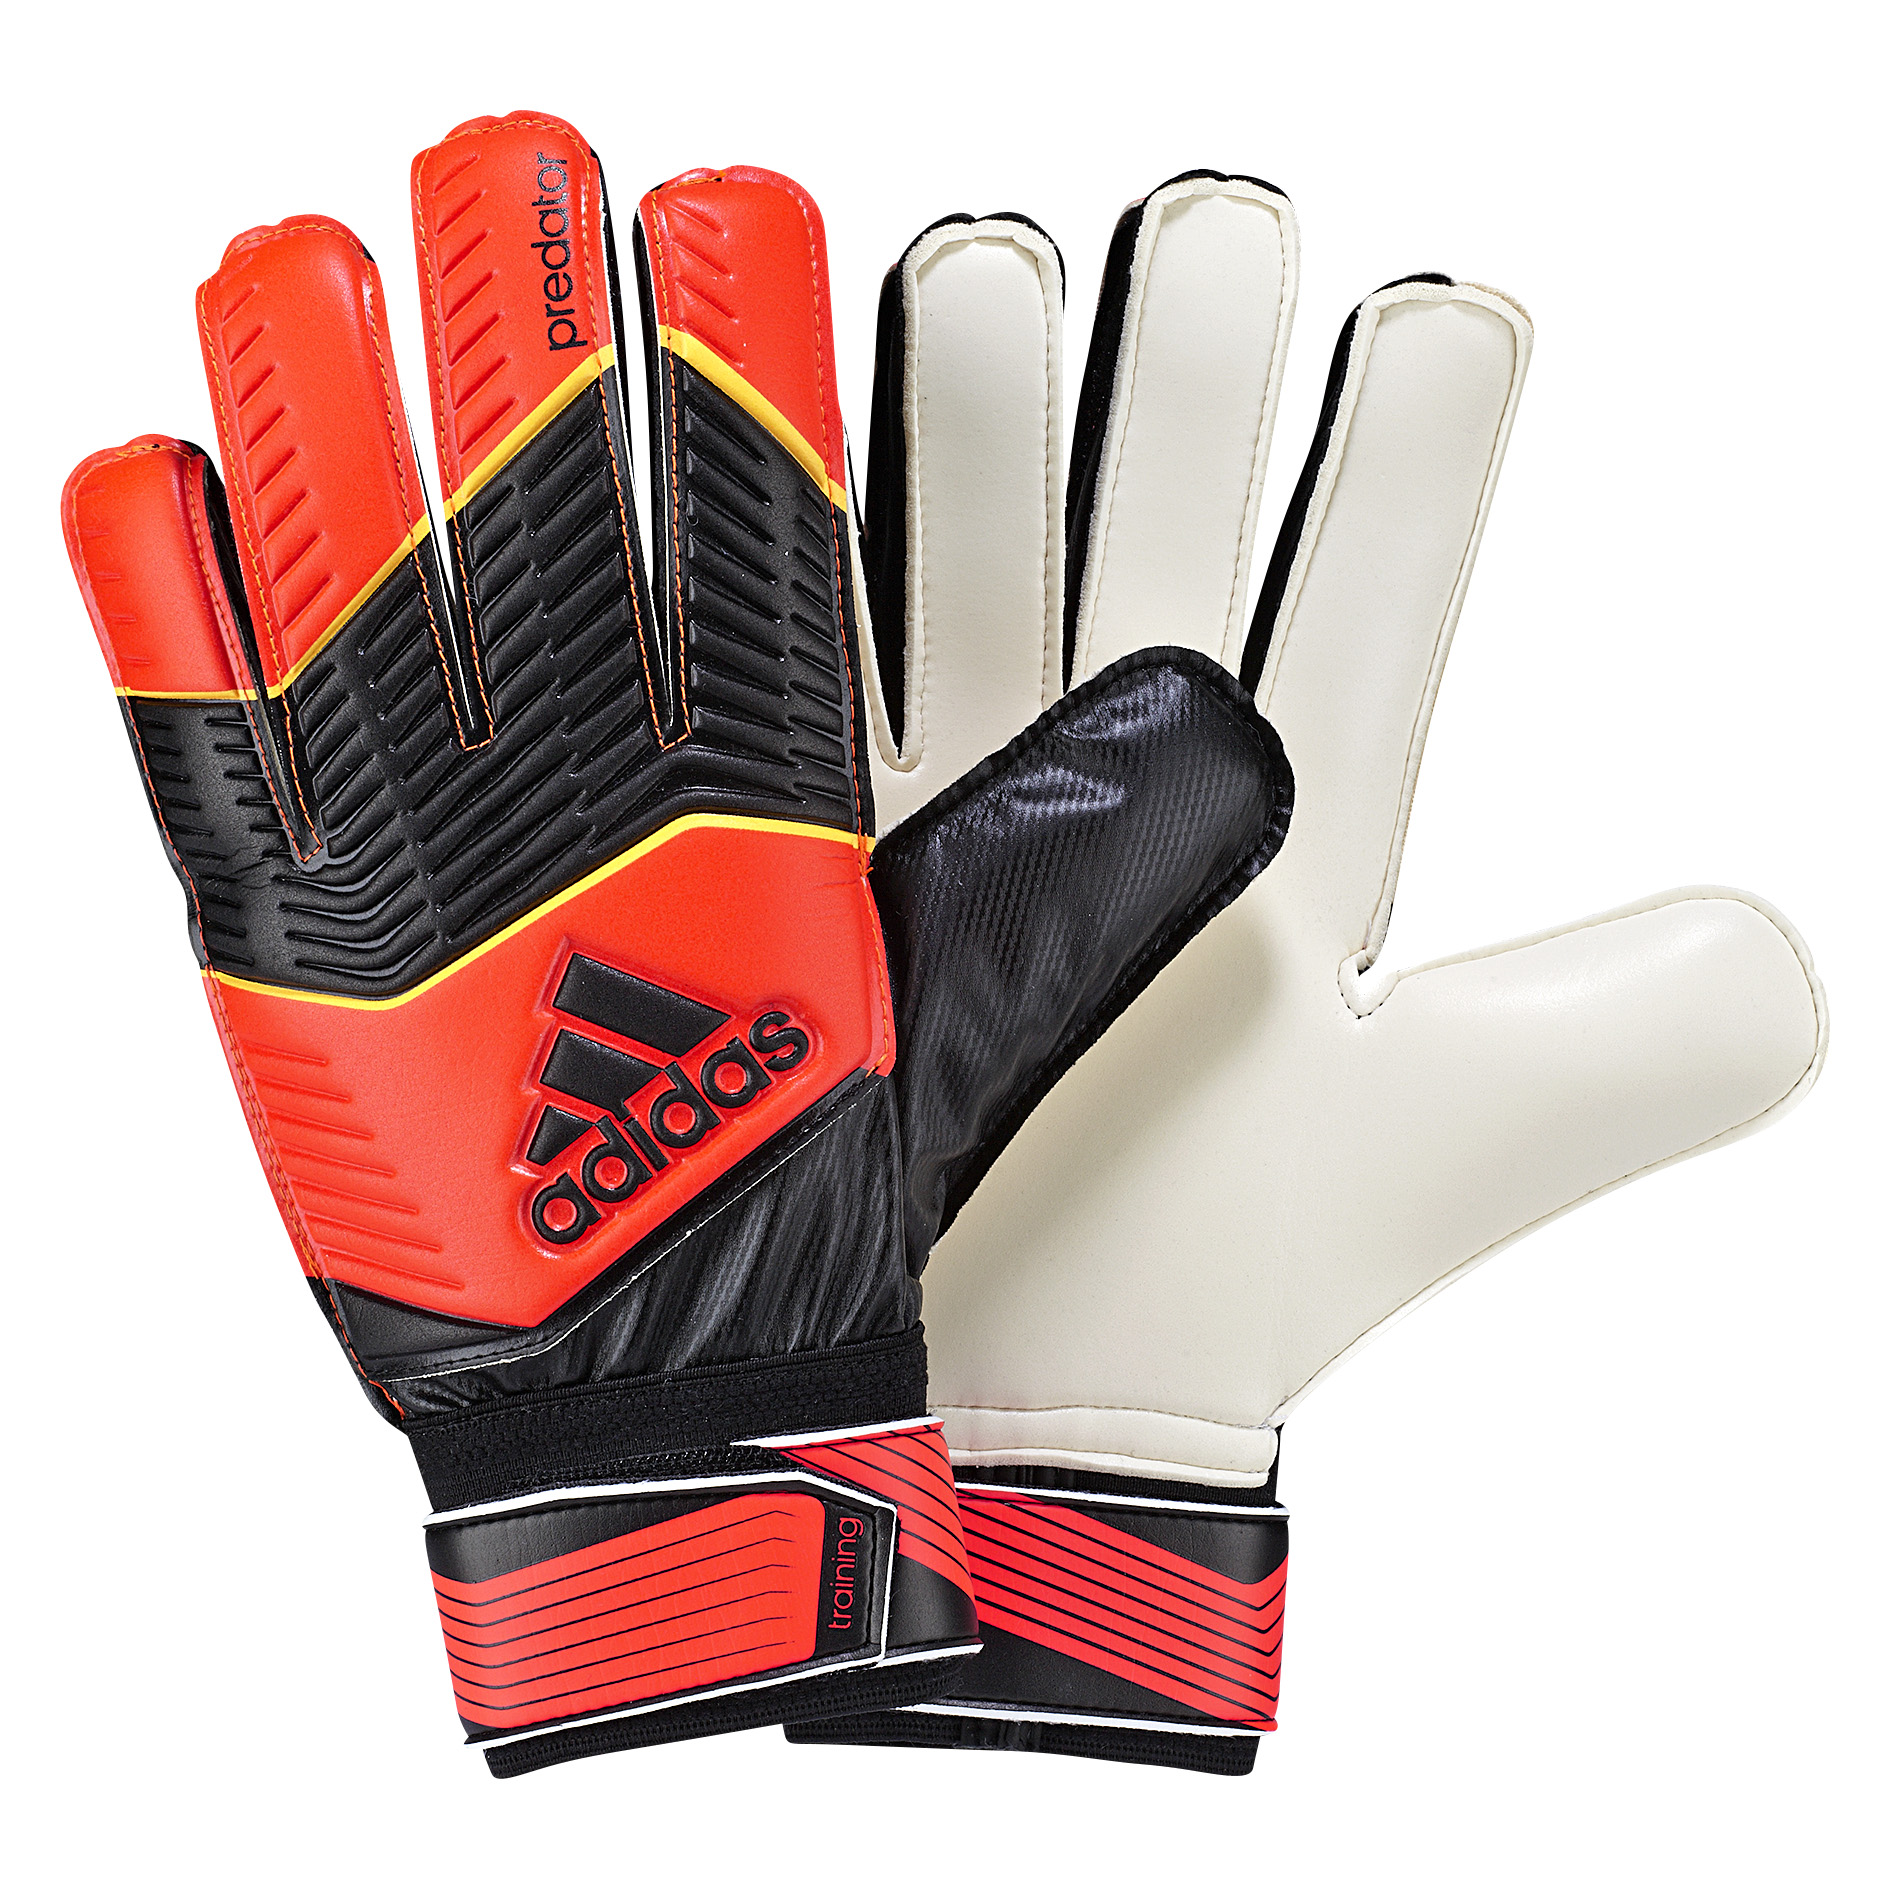 Adidas Predator Training Goalkeeper Glove Orange